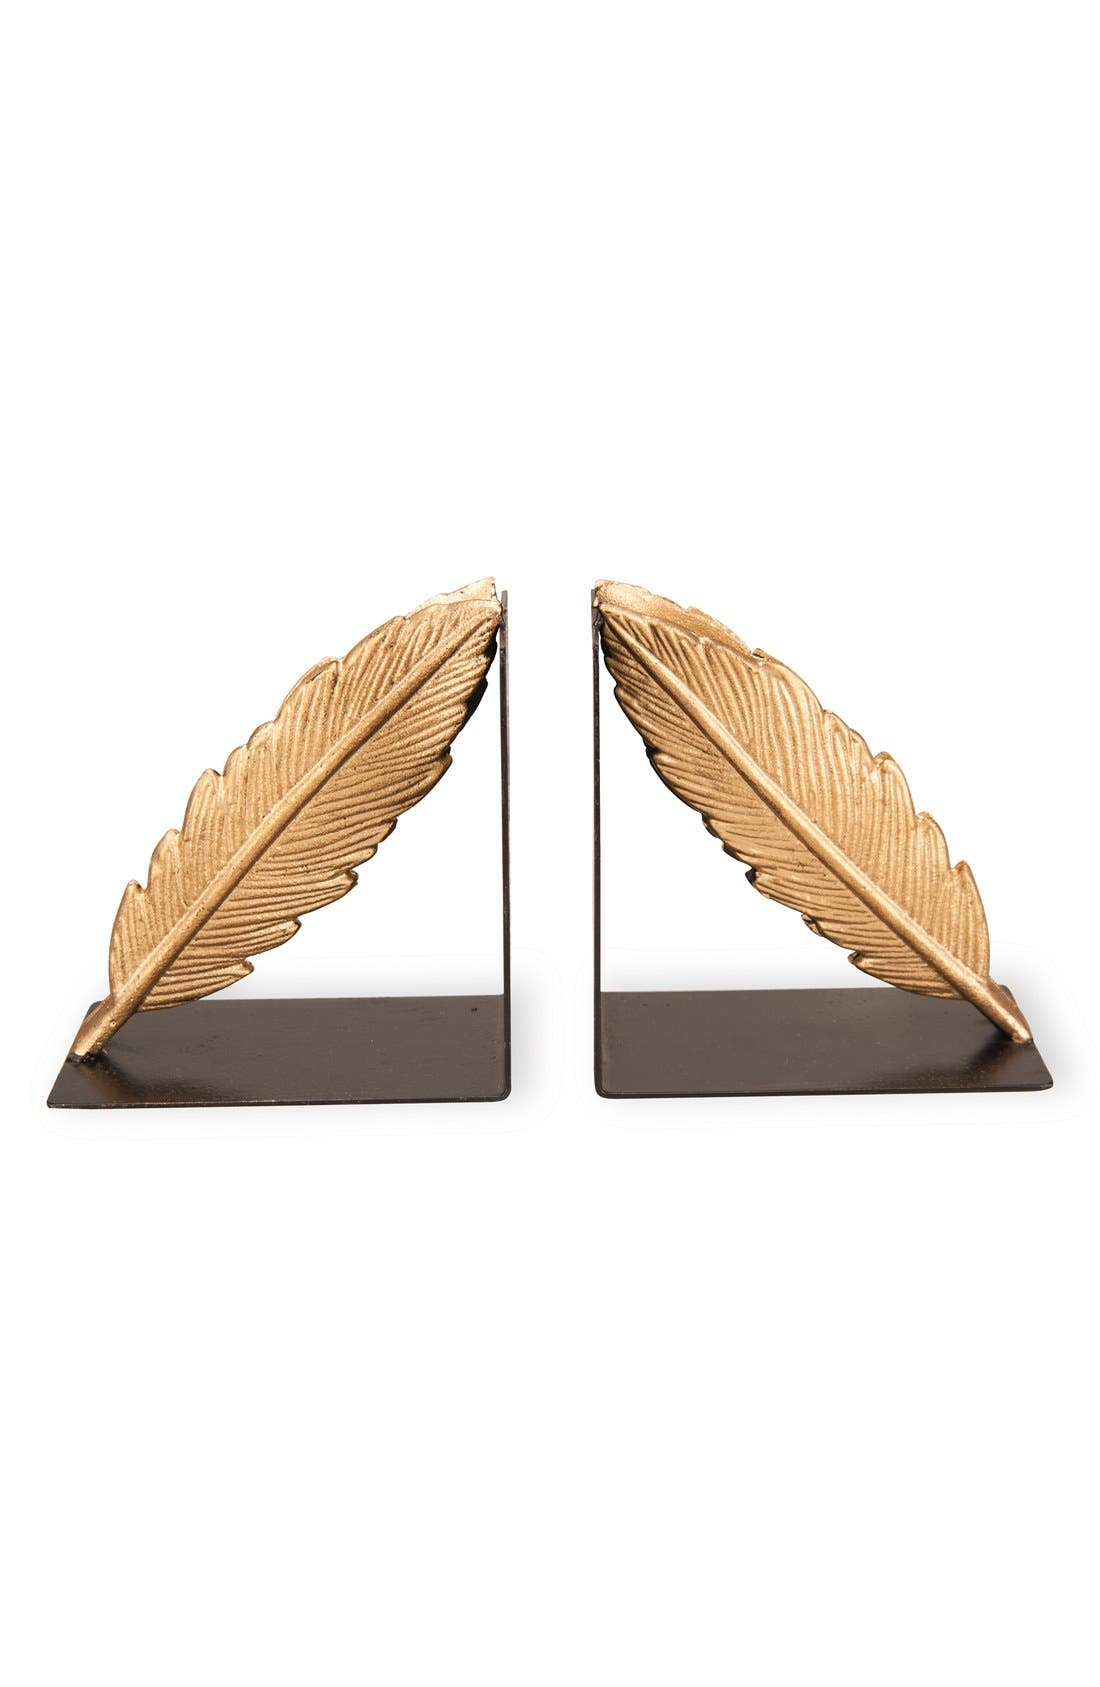 Alternate Image 1 Selected - Foreside Gold Feather Bookends (Set of 2)